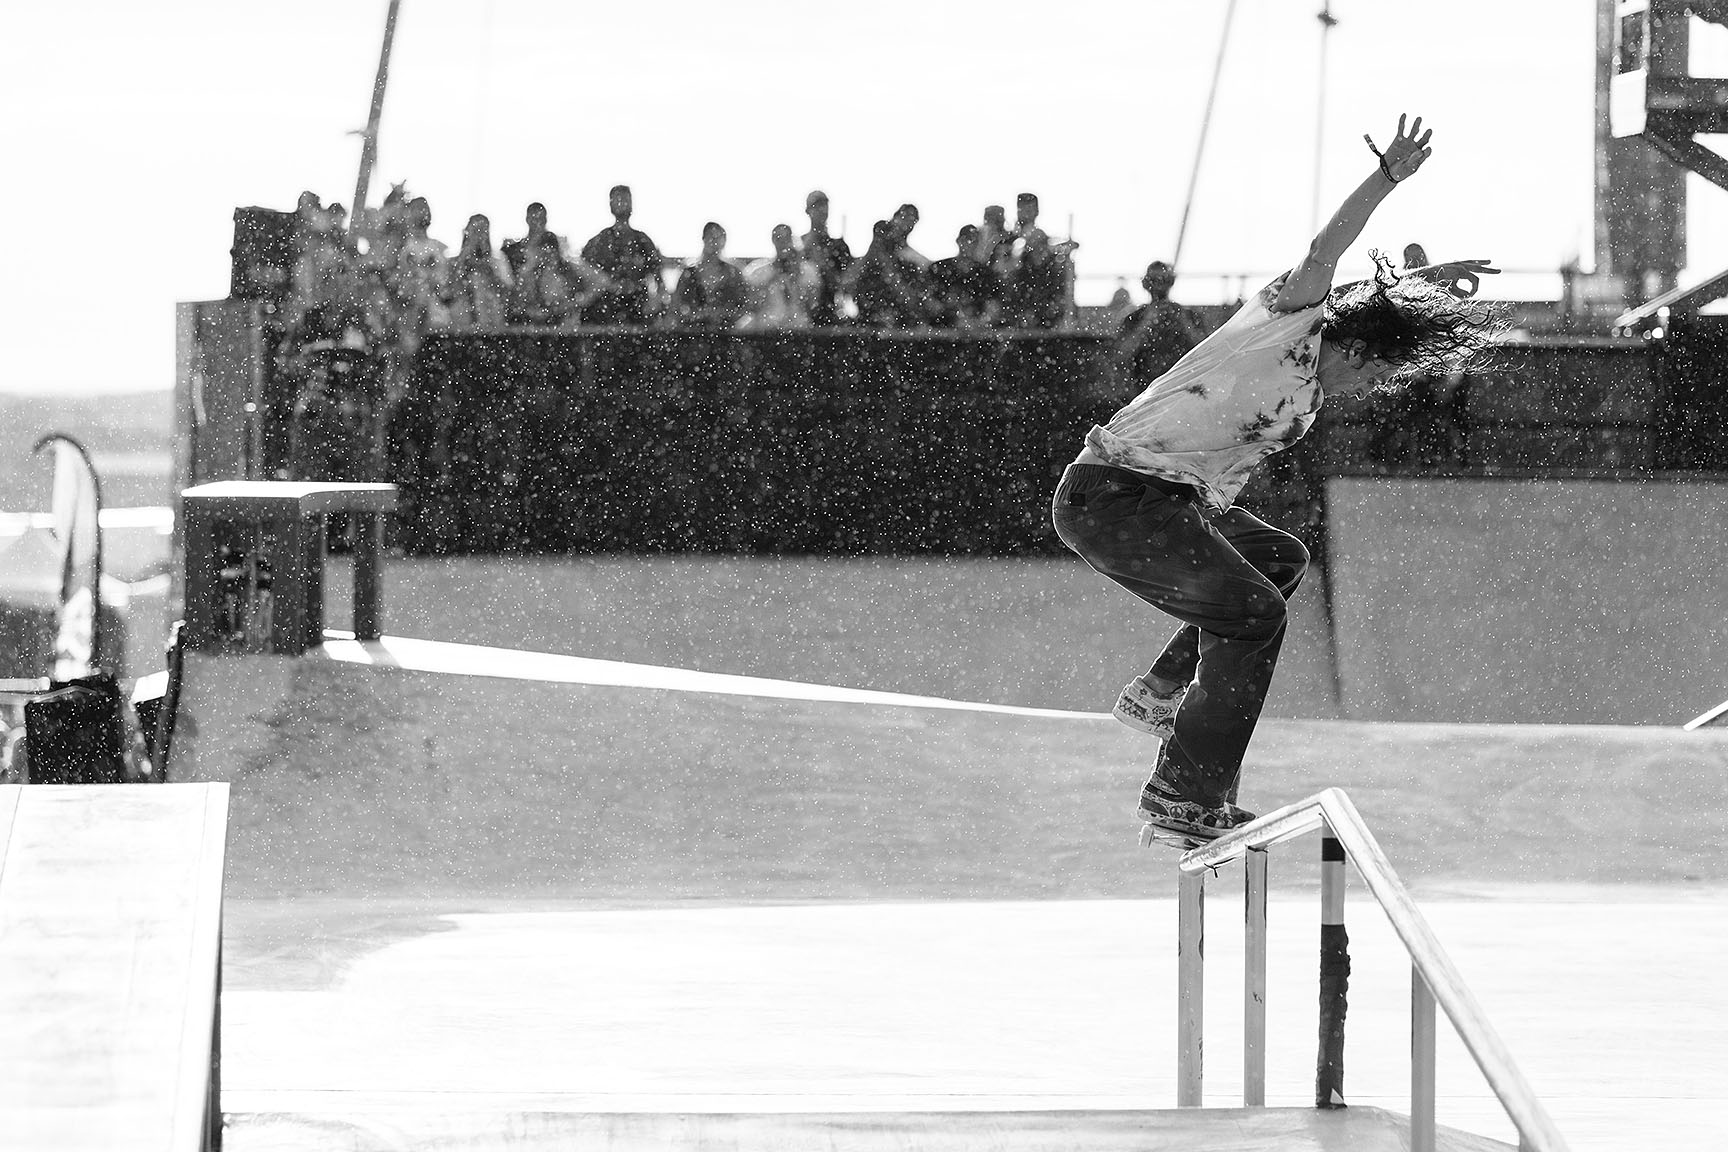 Evan Smith skates in the Men's Skateboard Street final between mini squalls during a commercial break. The storm that moved in before Men's Skateboard Street hit so quickly that no one got out of it dry. The final, when it eventually went down, was contested by a field of skateboarders with wet shoes and wet clothes but not dampened spirits.